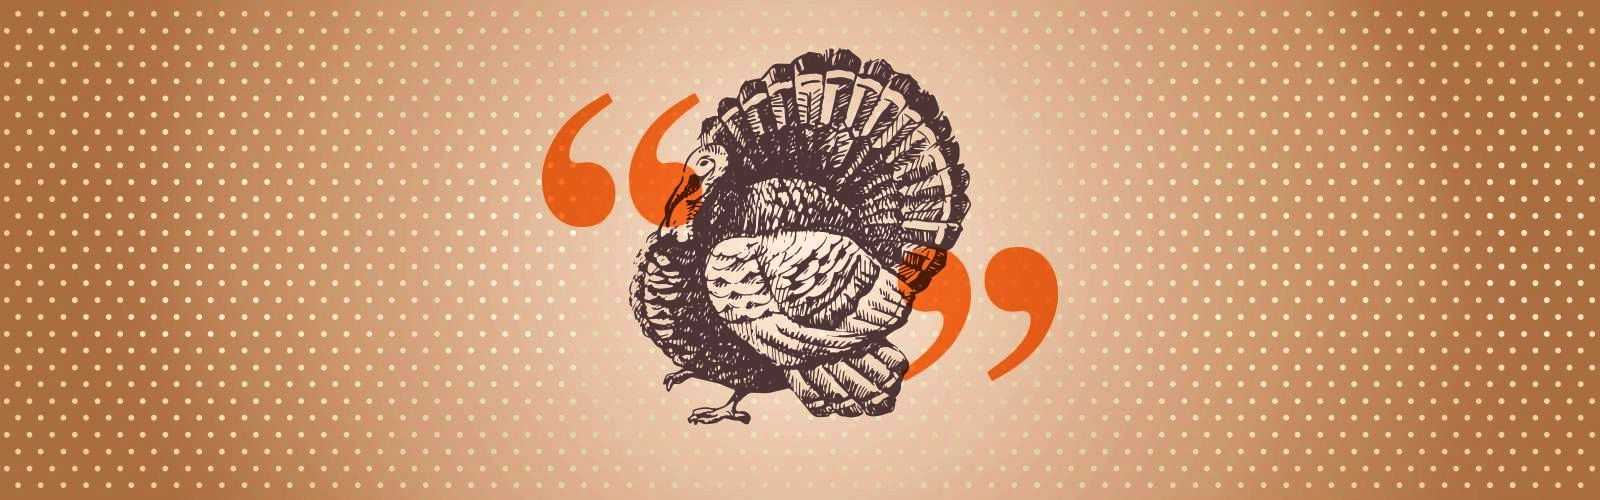 20 favorite thanksgiving quotes the poultry